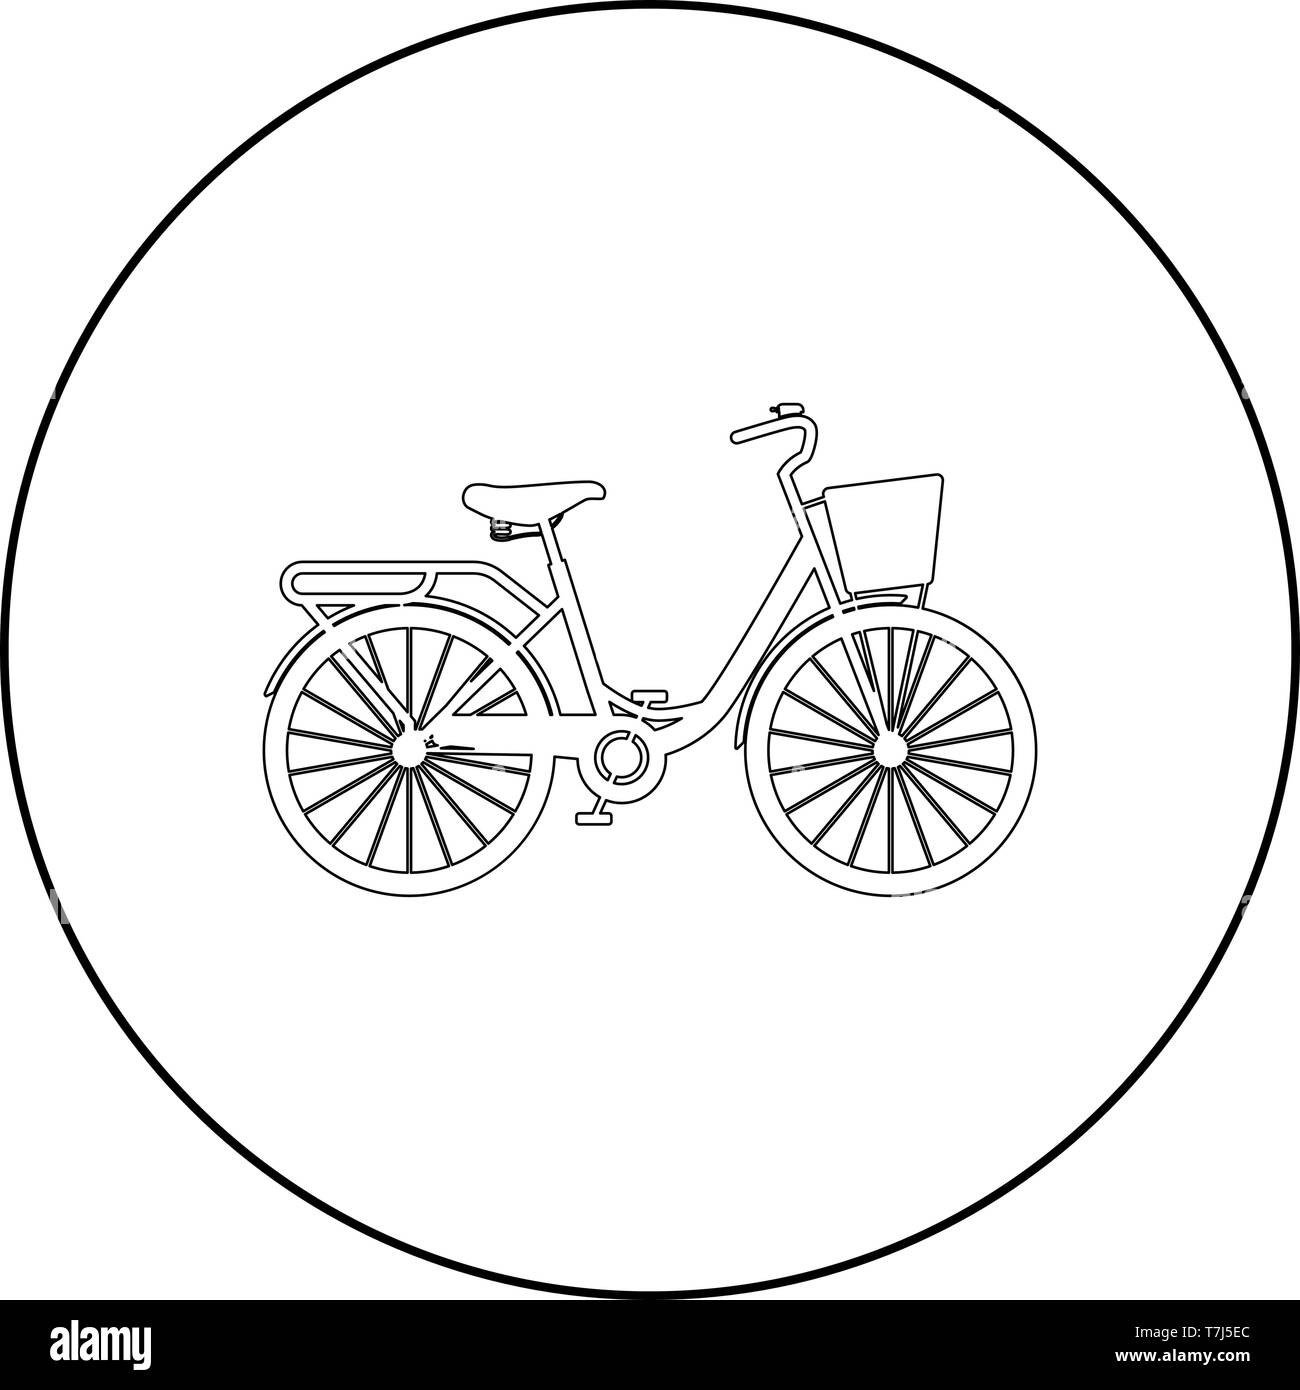 Woman's bicycle with basket Womens beach cruiser bike Vintage bicycle basket ladies road cruising icon in circle round outline black color vector - Stock Image